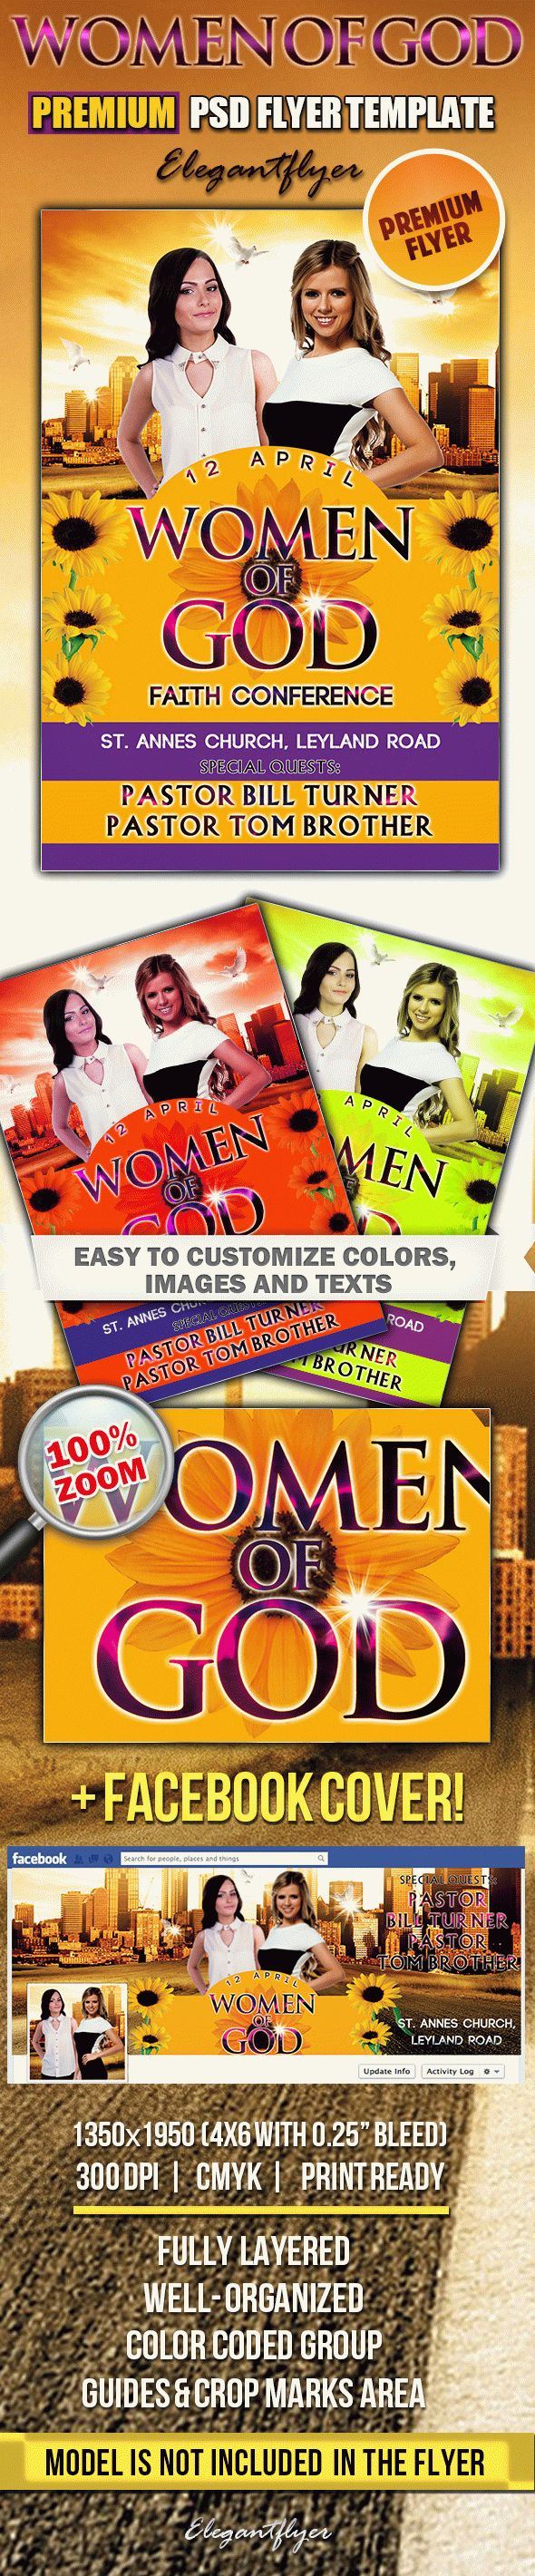 Women of God PSD Flyer Templates Facebook Cover by ElegantFlyer – Conference Flyer Template